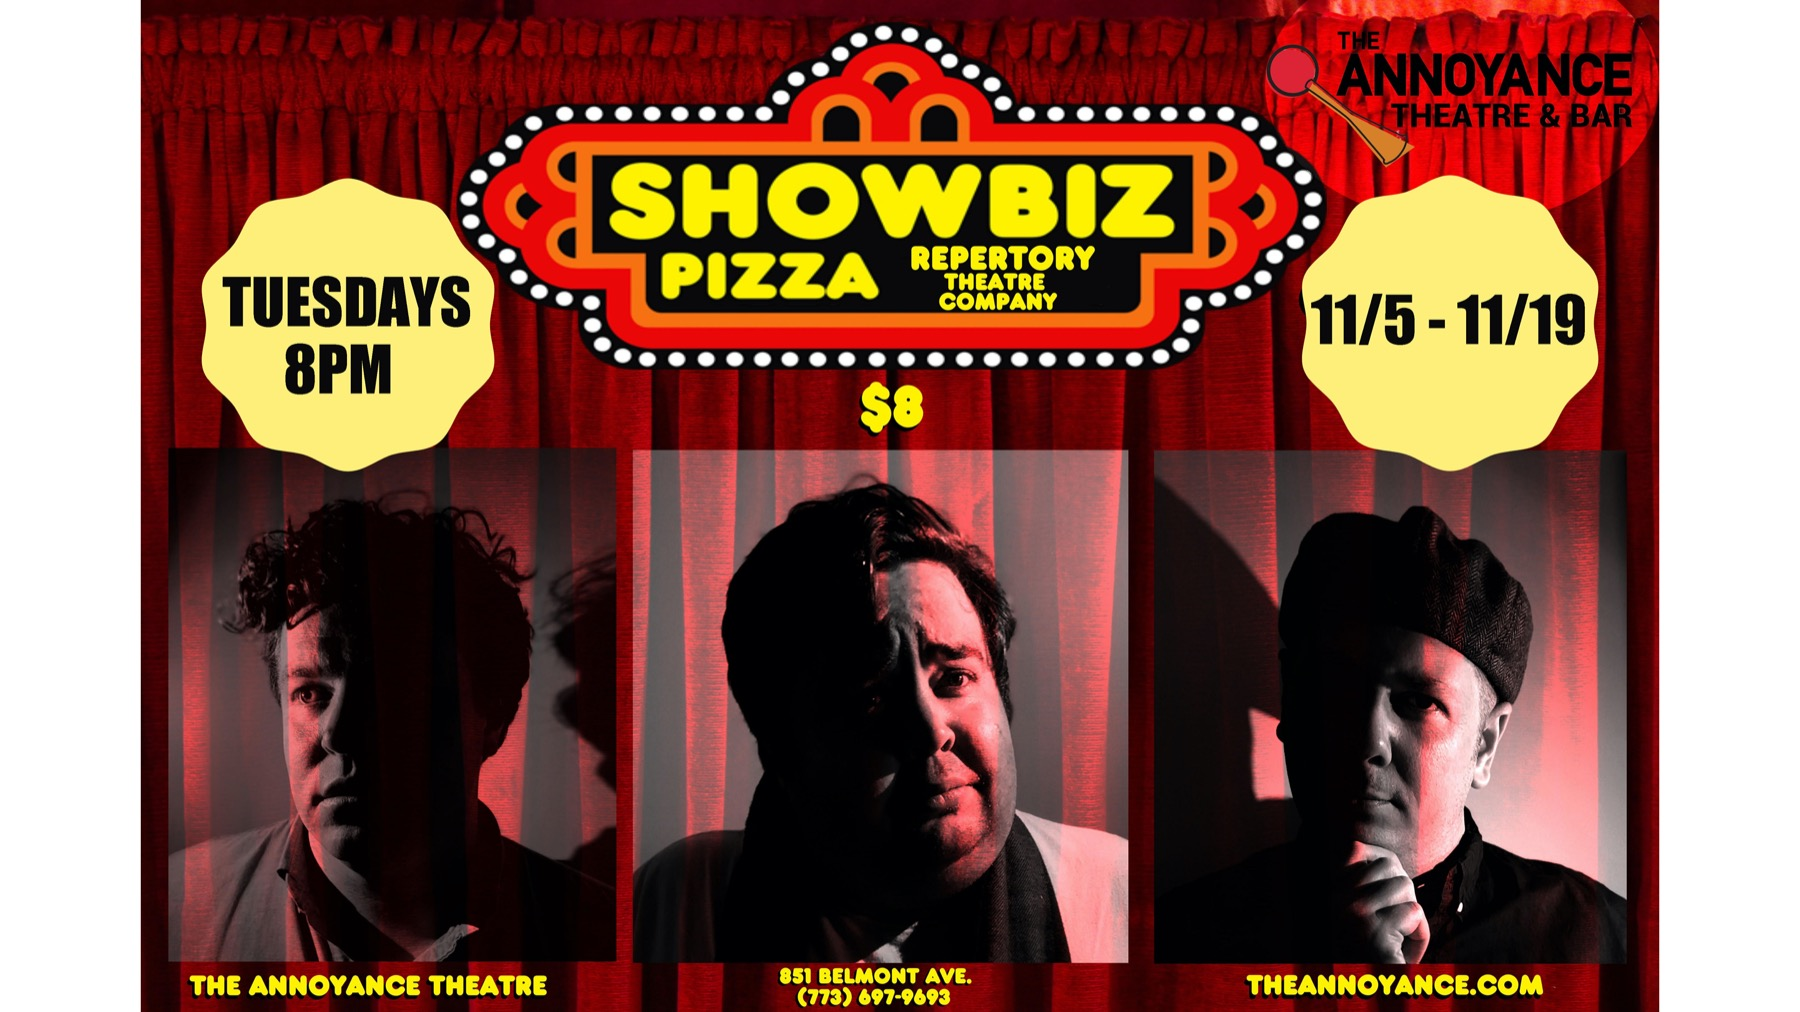 Showbiz Pizza Repertory Theater